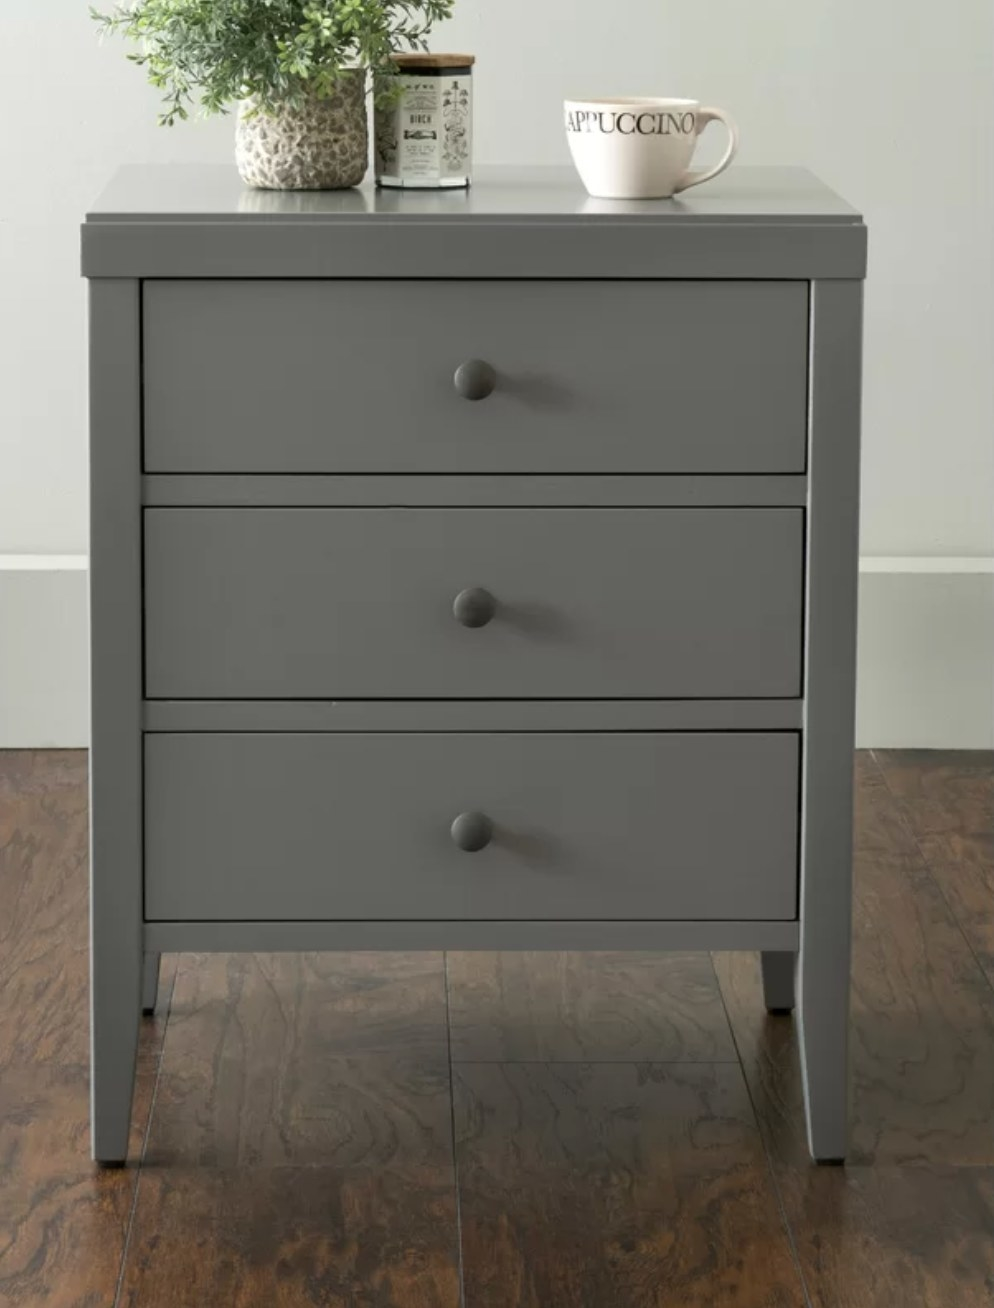 The three drawer nightstand in gray with a coffee cup and plant on top